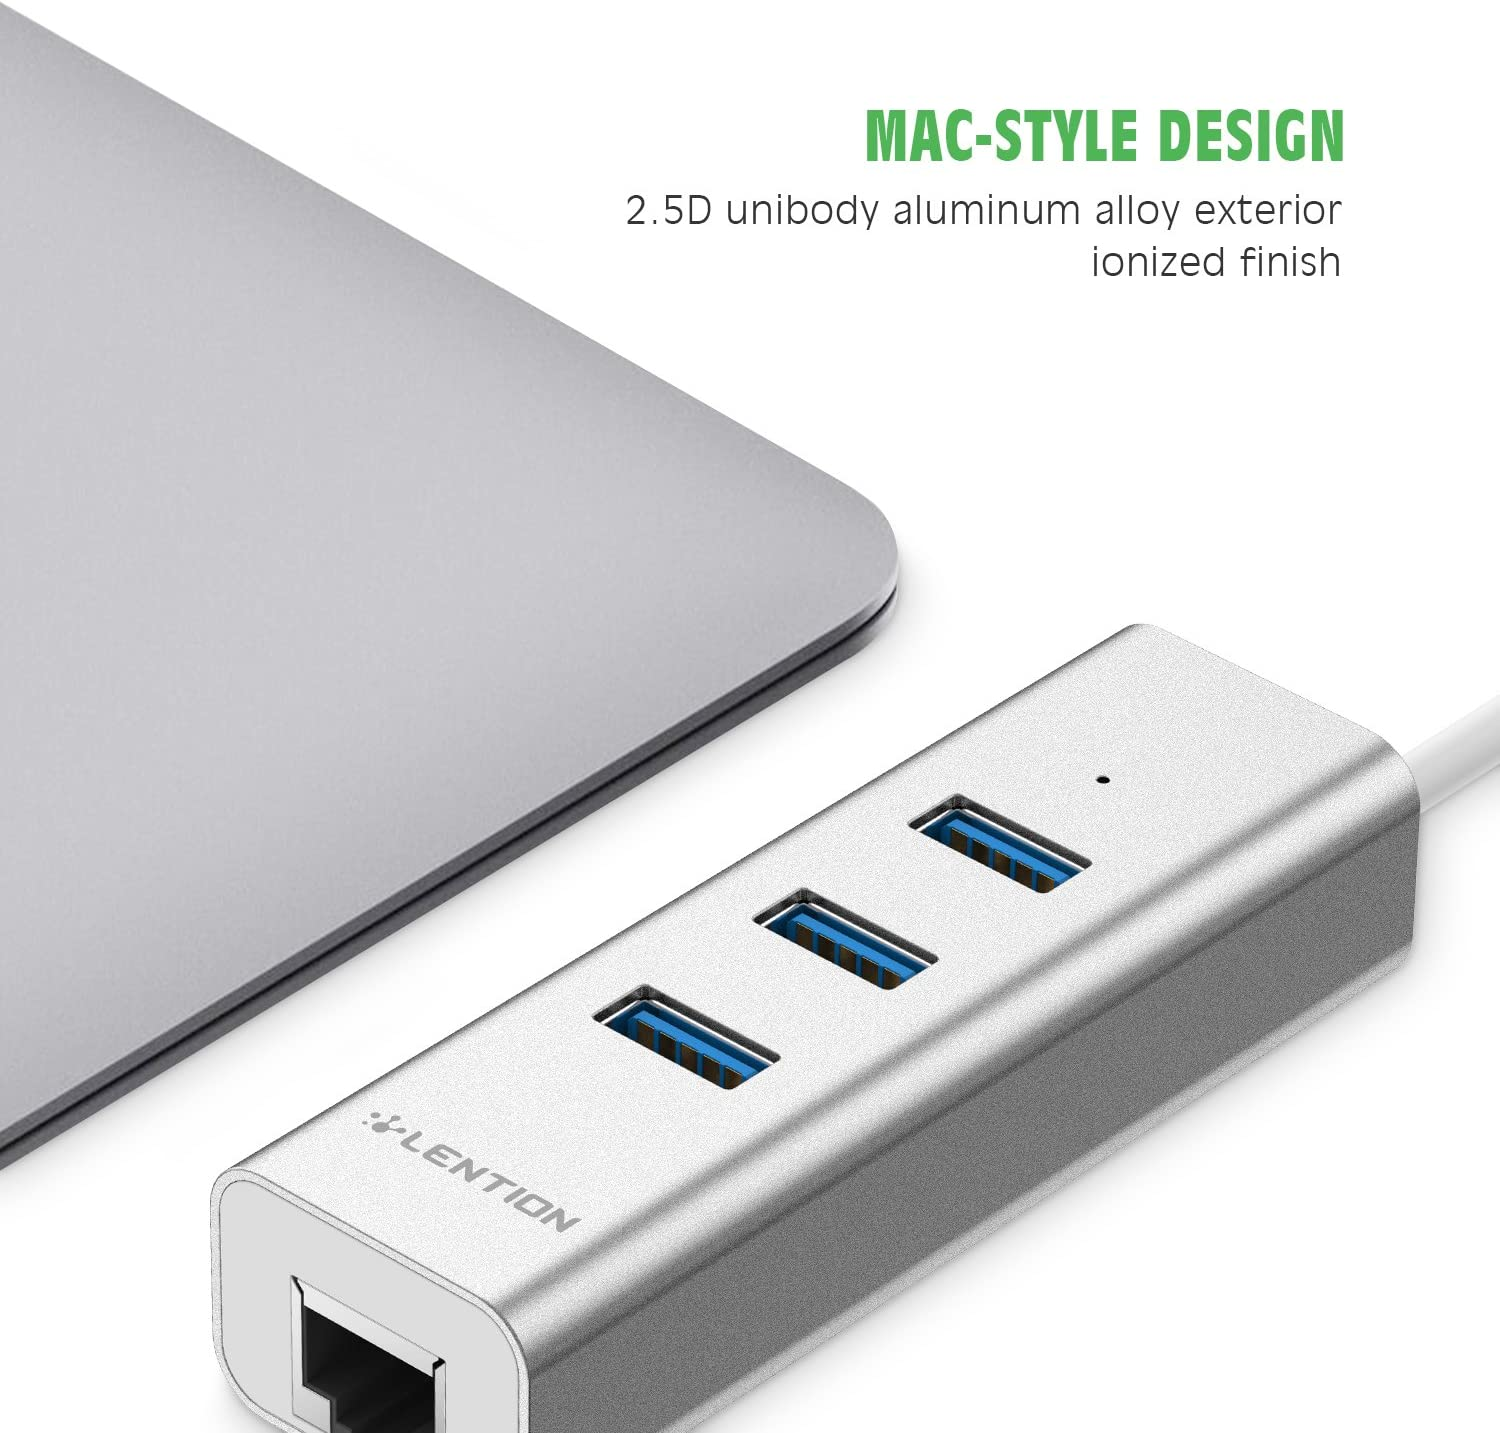 LENTION 3-Port USB 3.0 Hub with Ethernet Network LAN Adapter Compatible MacBook Air//Pro iMac Chromebook and Other Devices with USB Type A Port Previous Generation Surface Silver